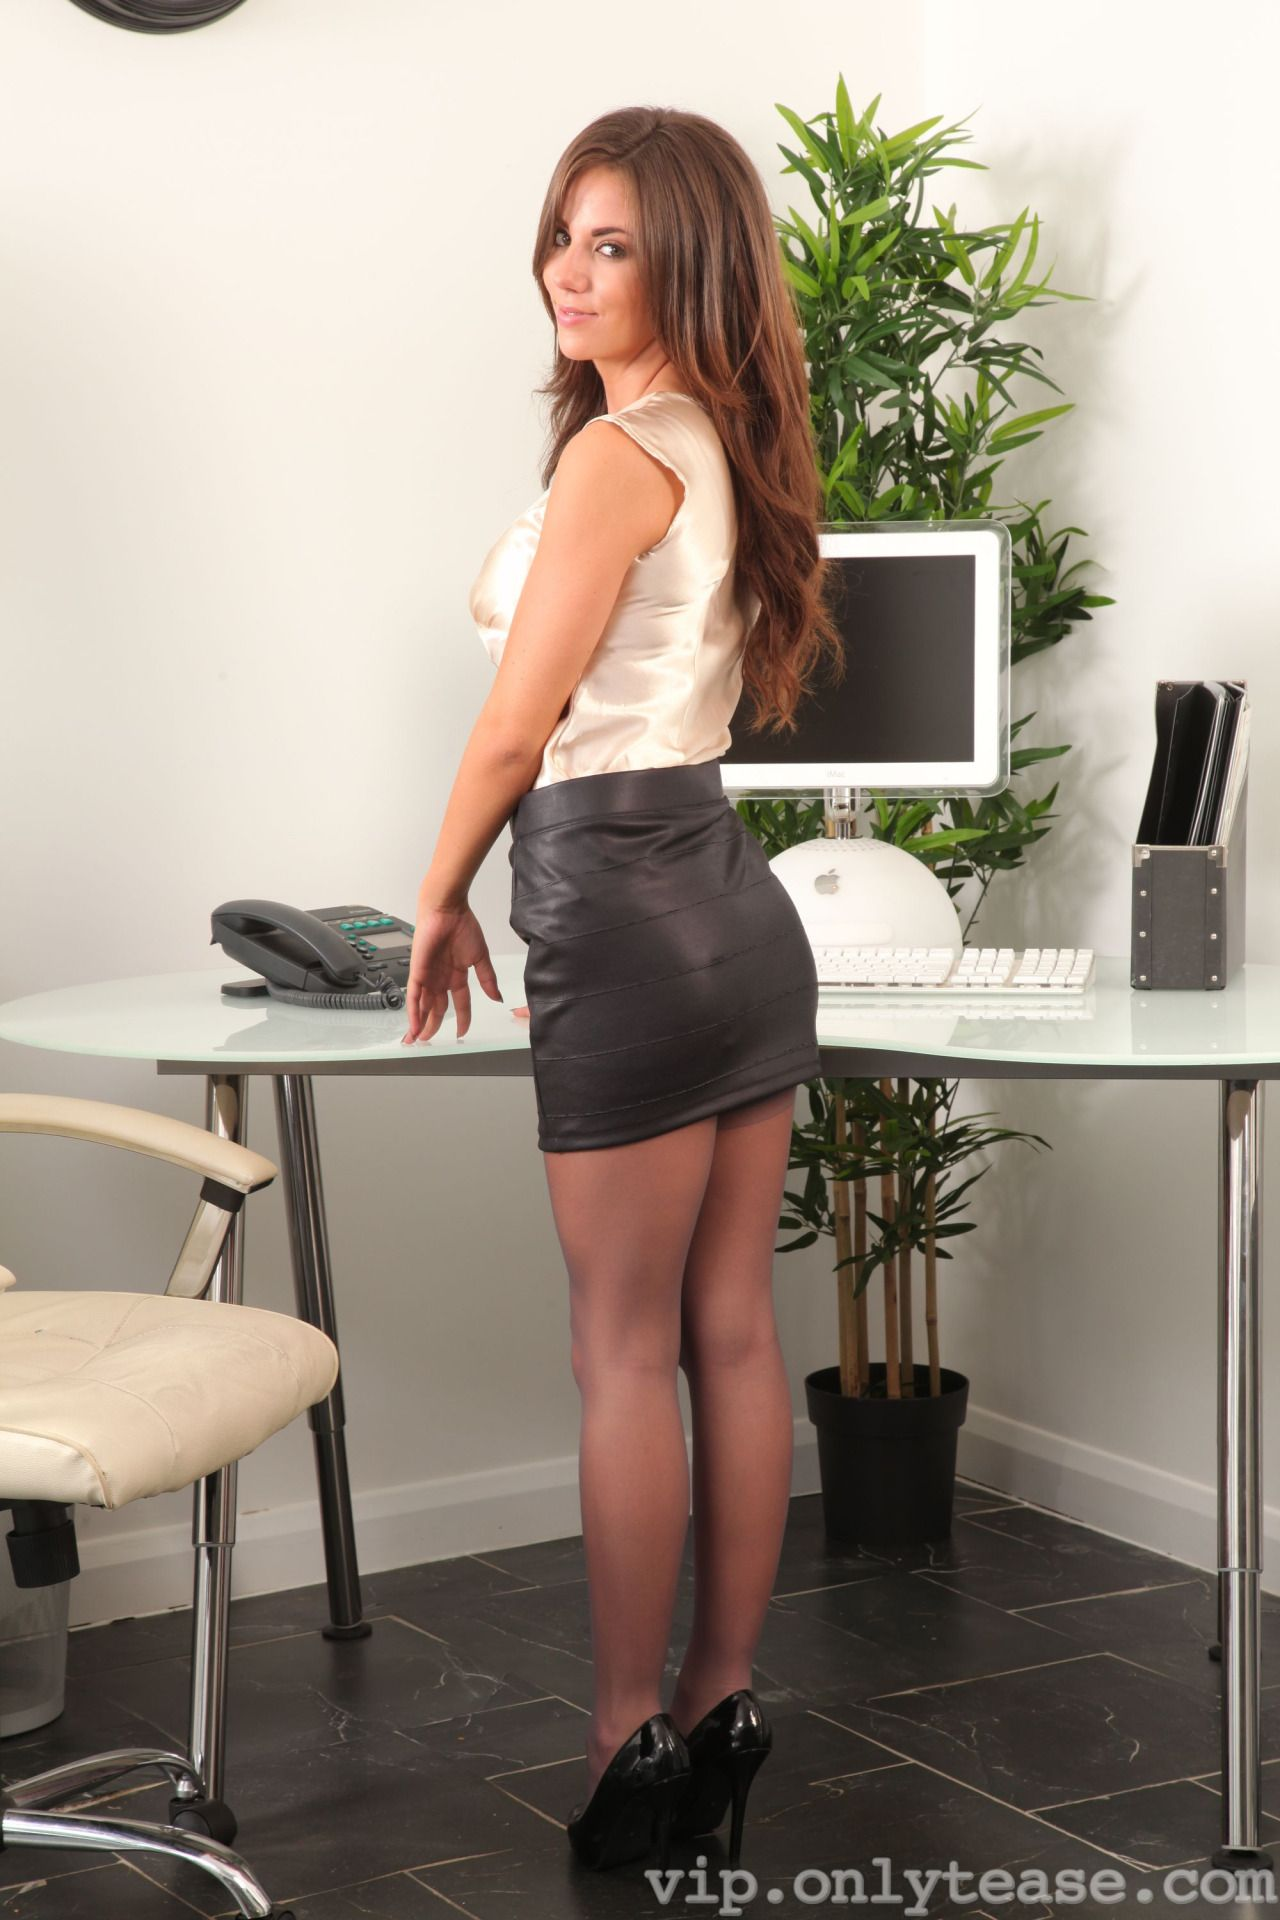 Only Secretaries Only Secretaries chicas Pinterest